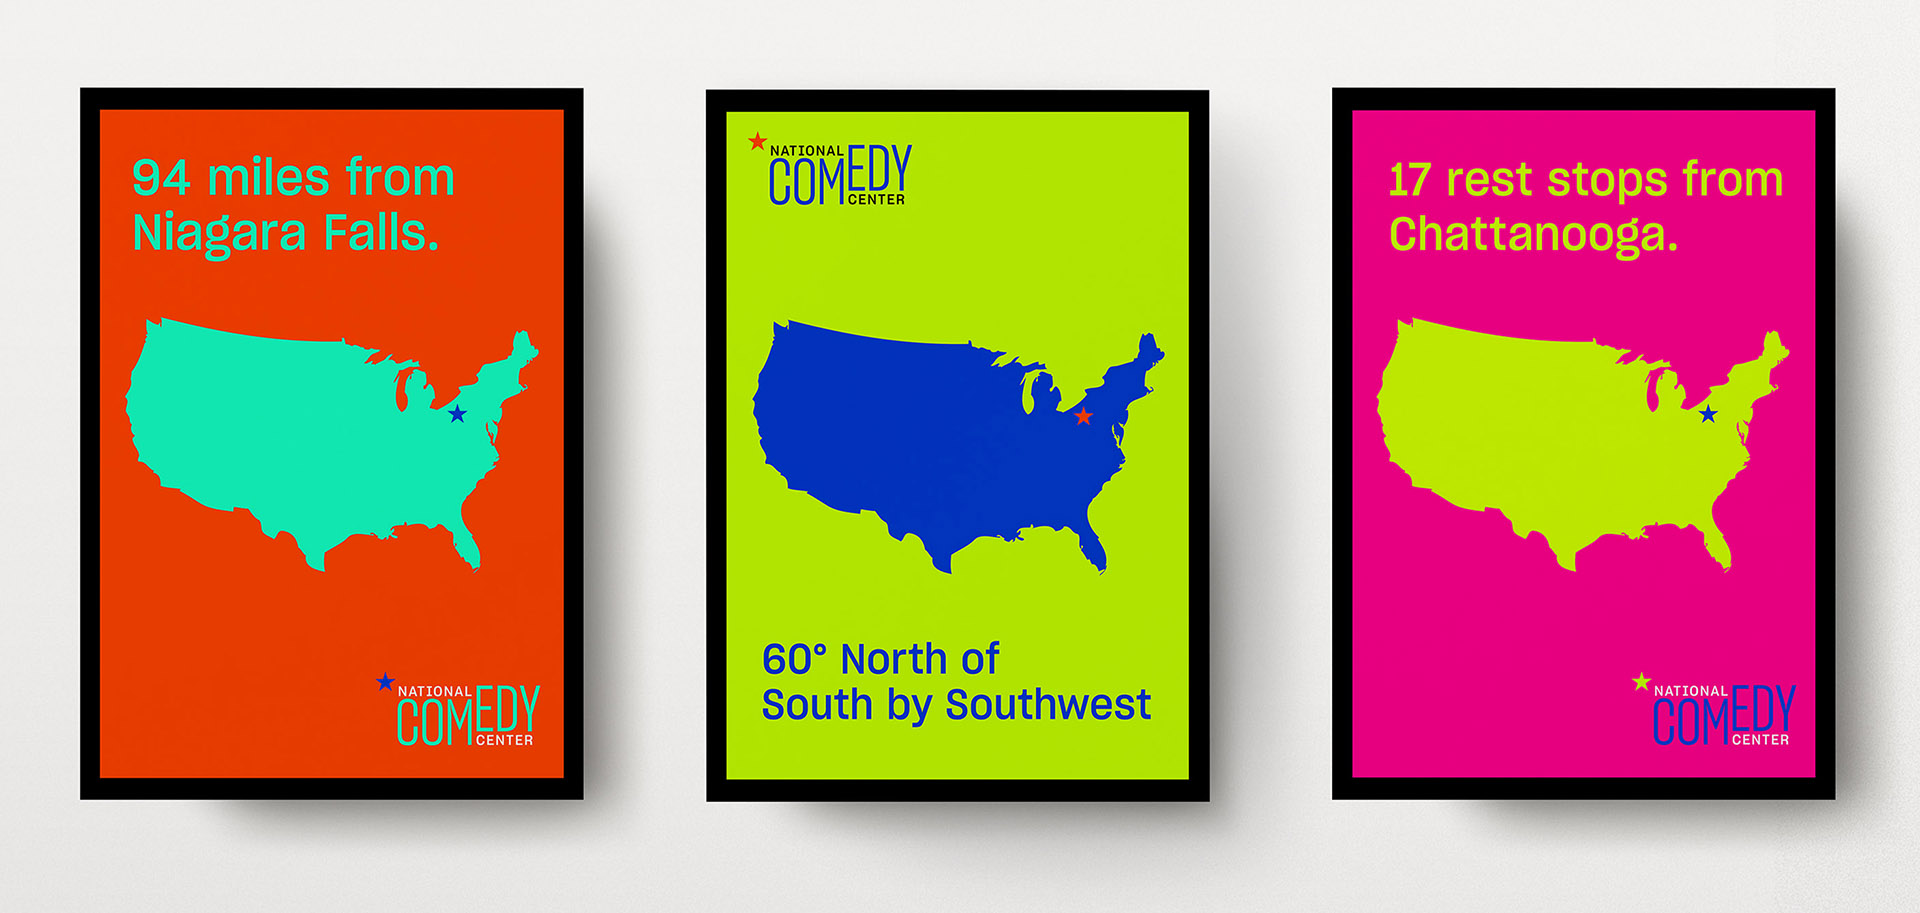 National Comedy Center campaign posters